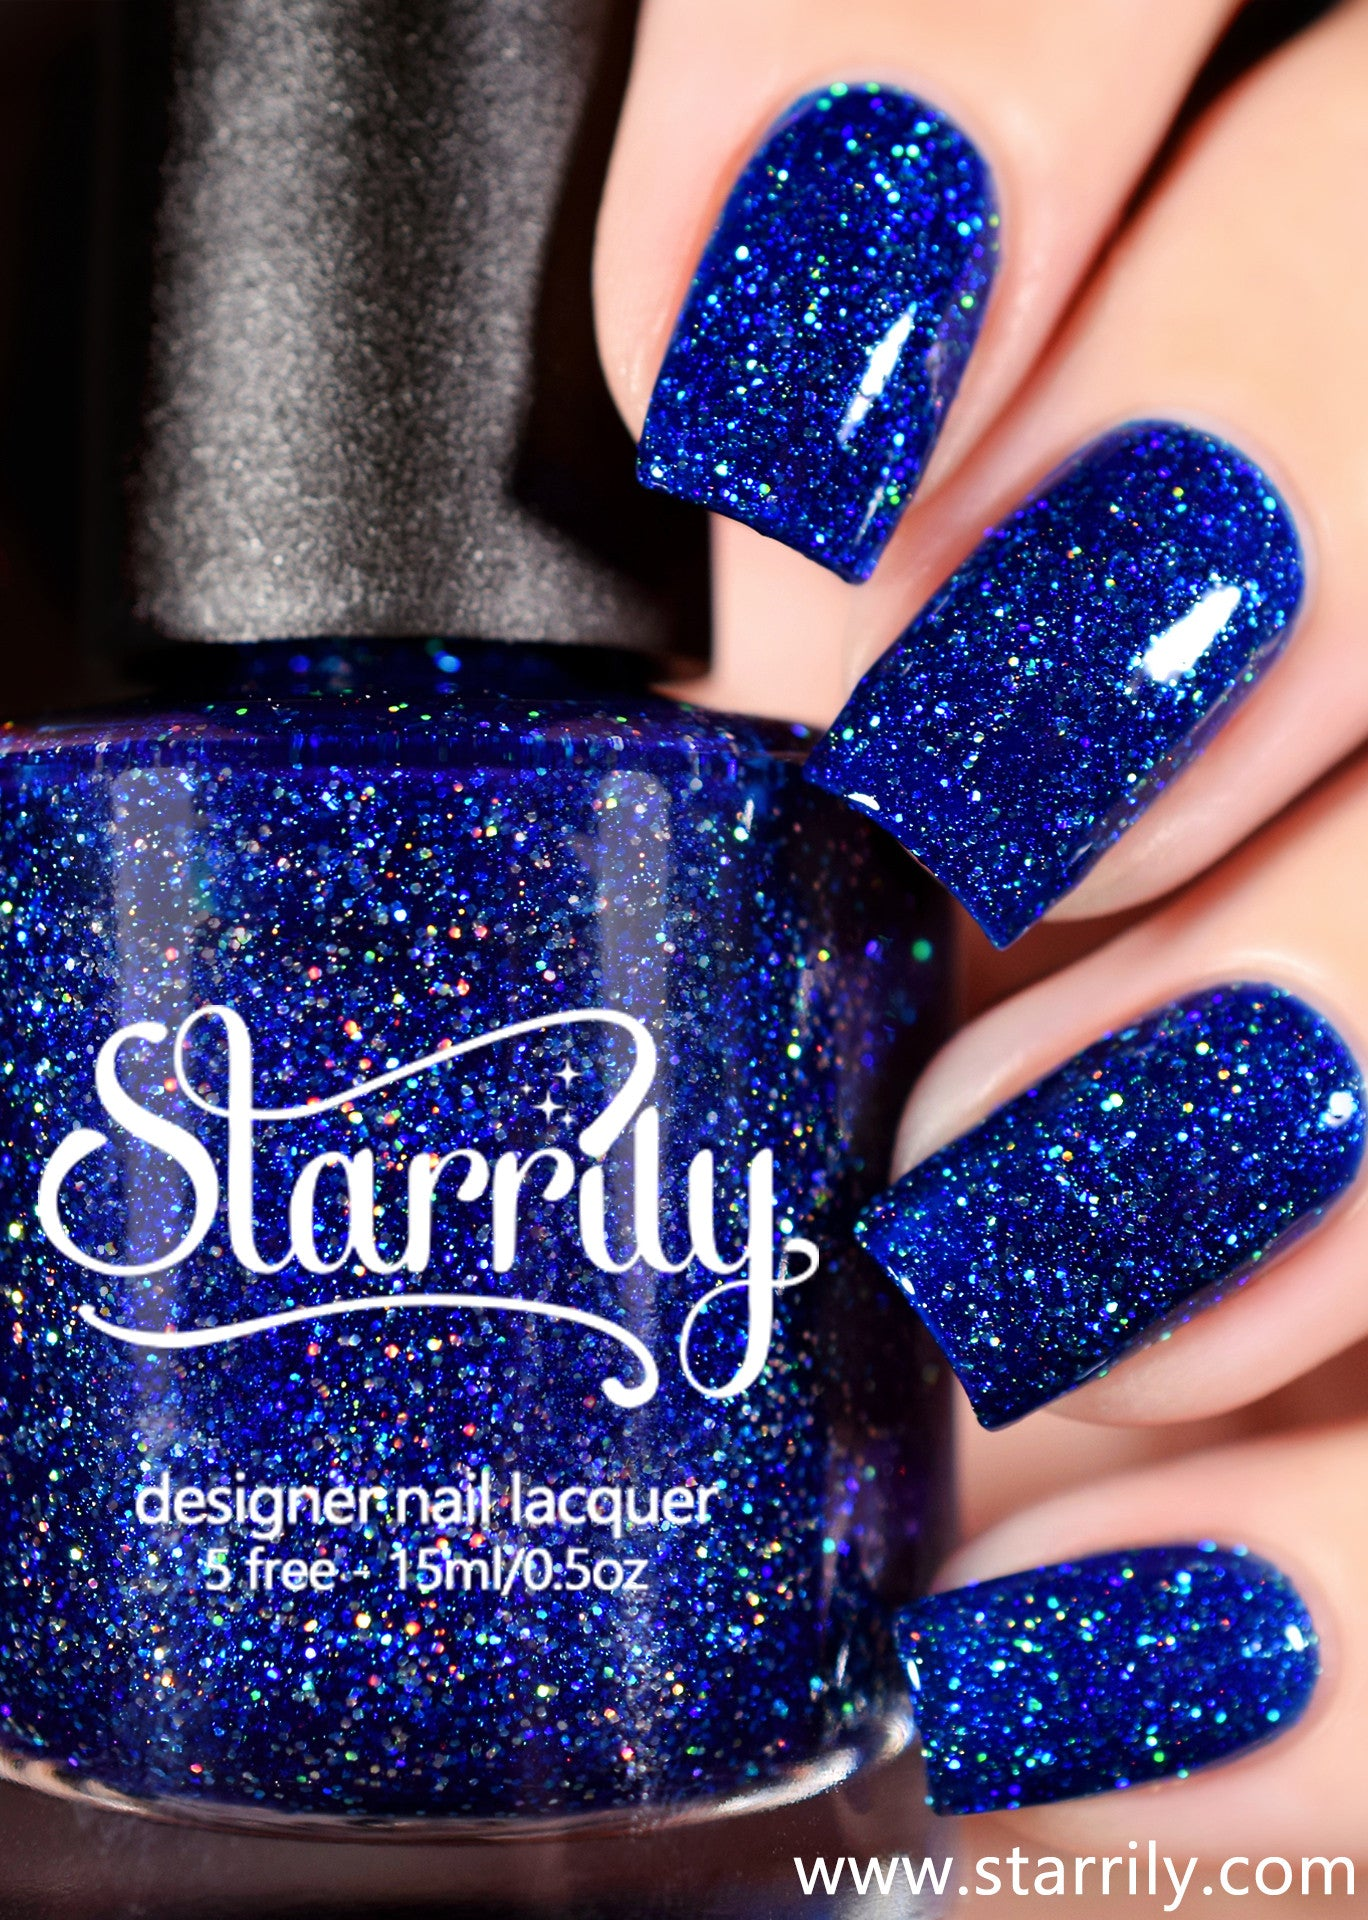 Starrily Bioluminescence - Dark Blue Glitter Holo Nail Polish - 15 ml